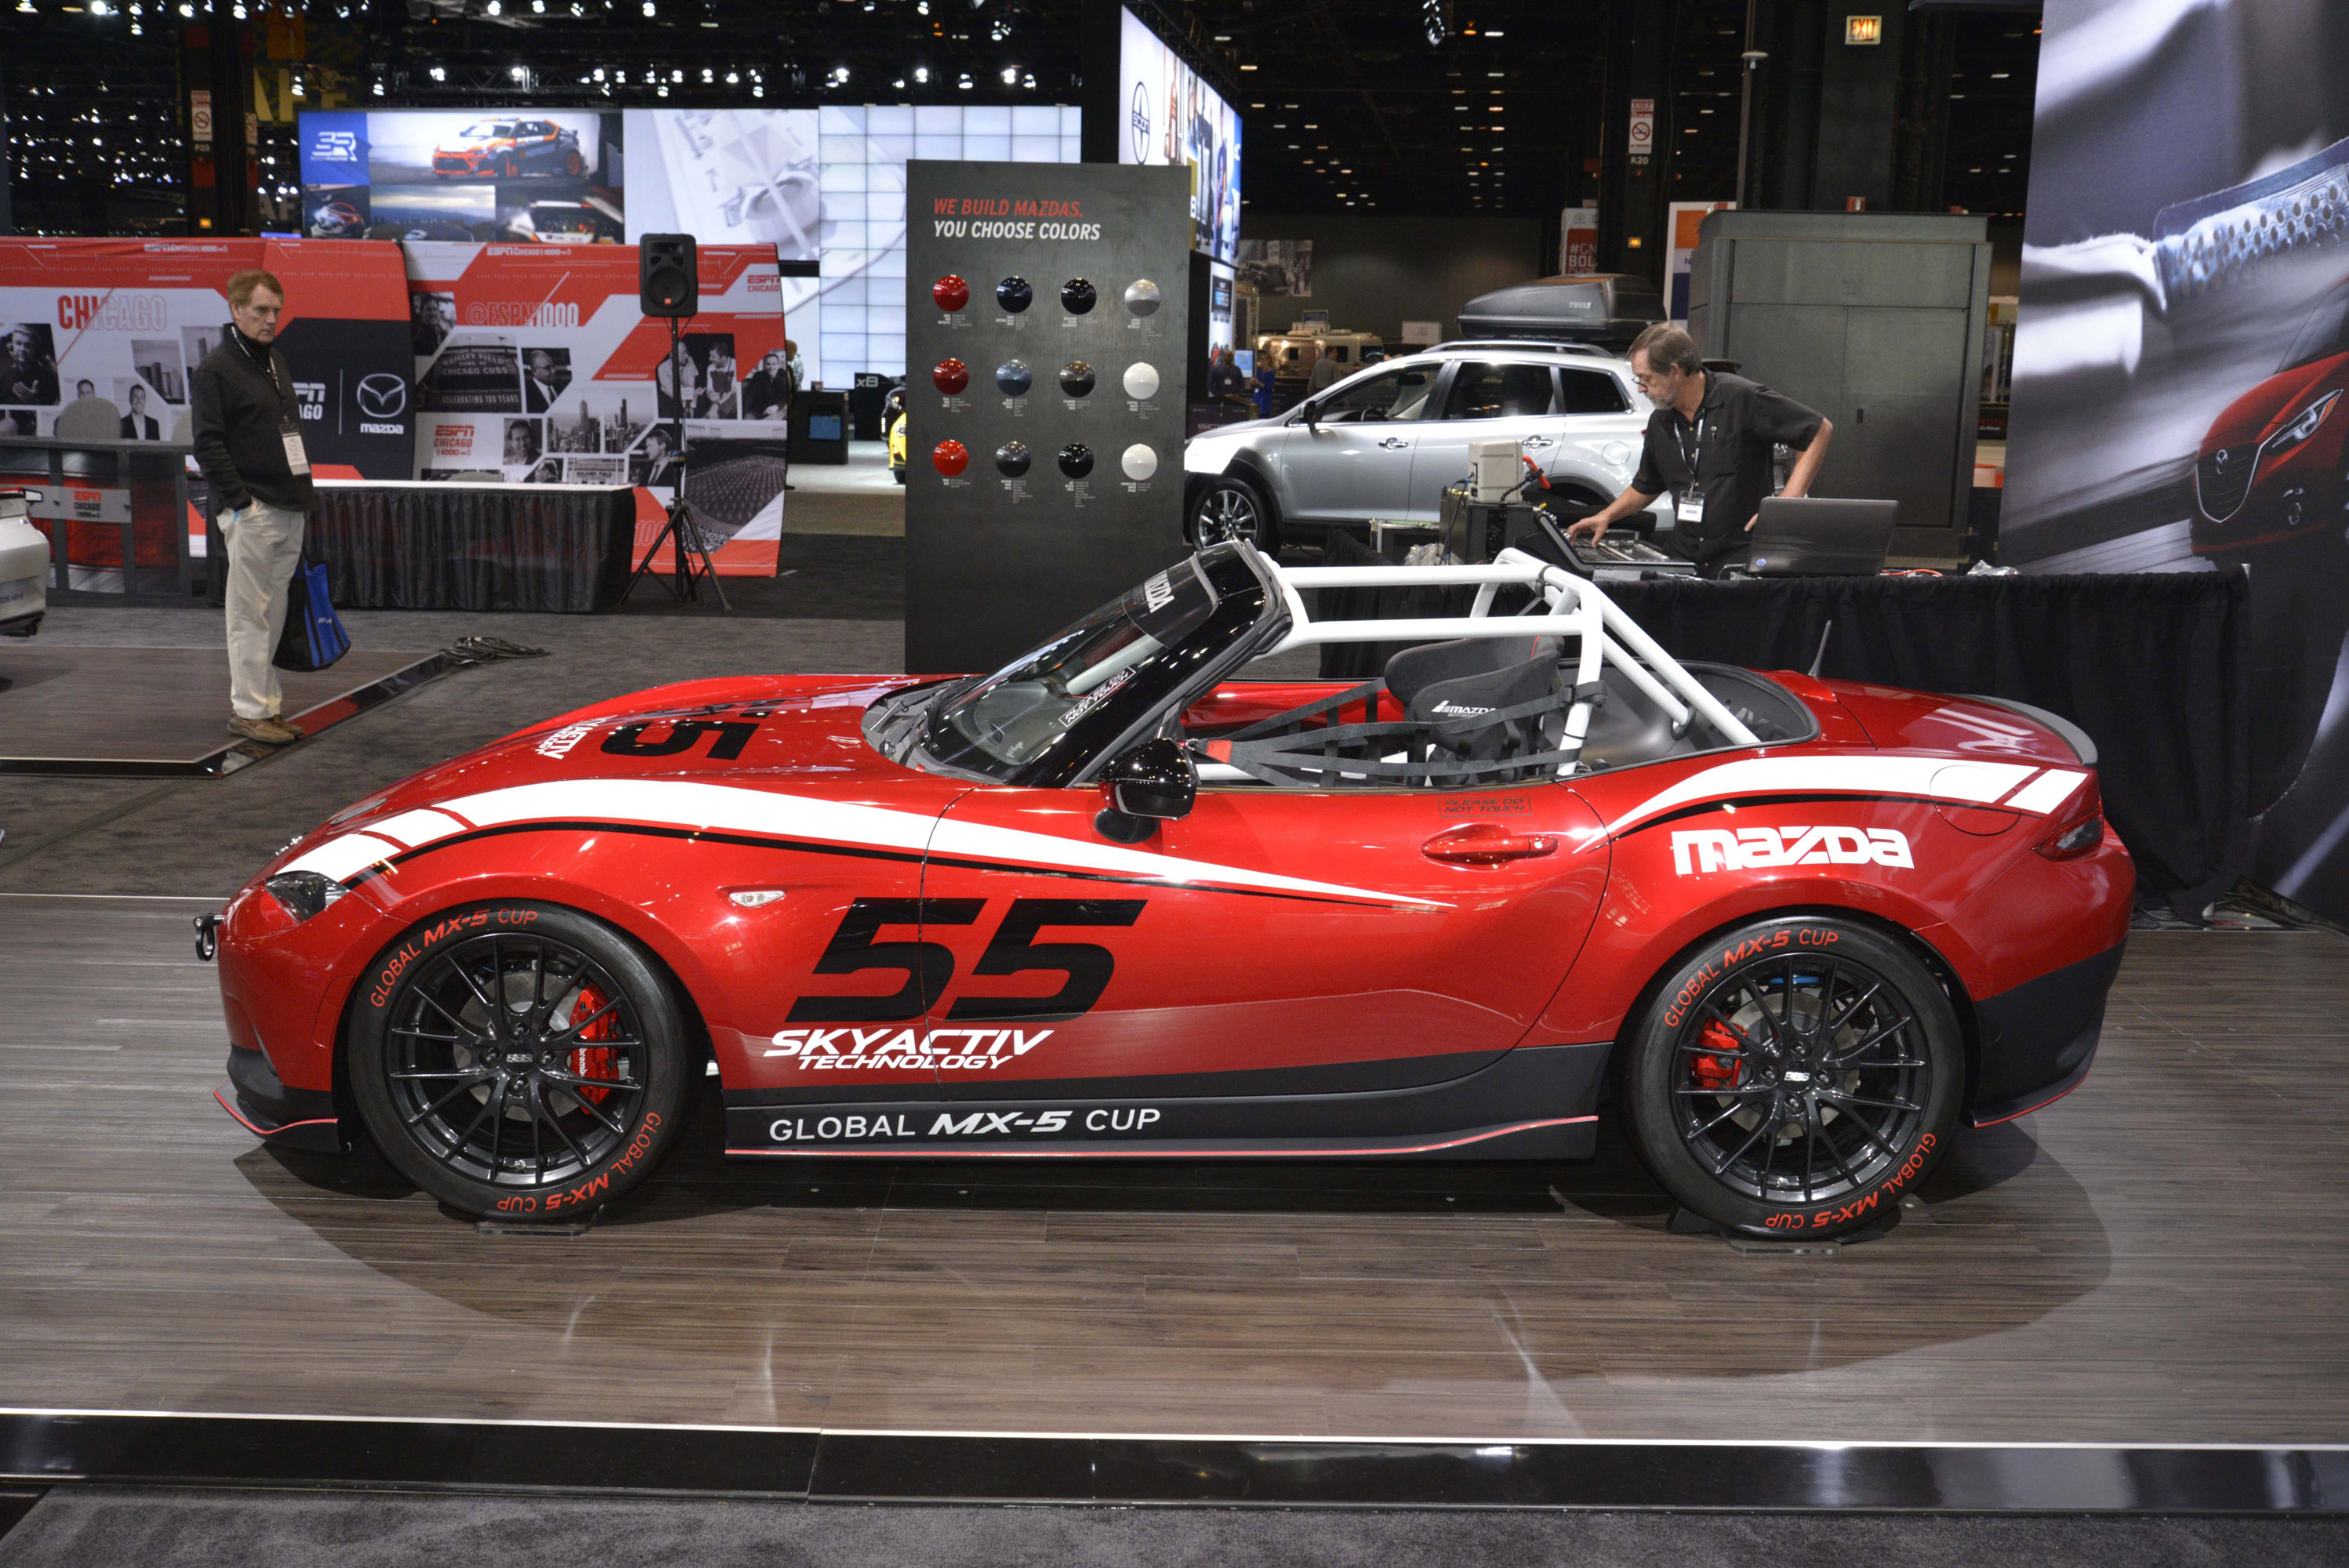 Mazda 2016 Global Mx 5 Cup Race Car Chicago 2015 Picture 117482